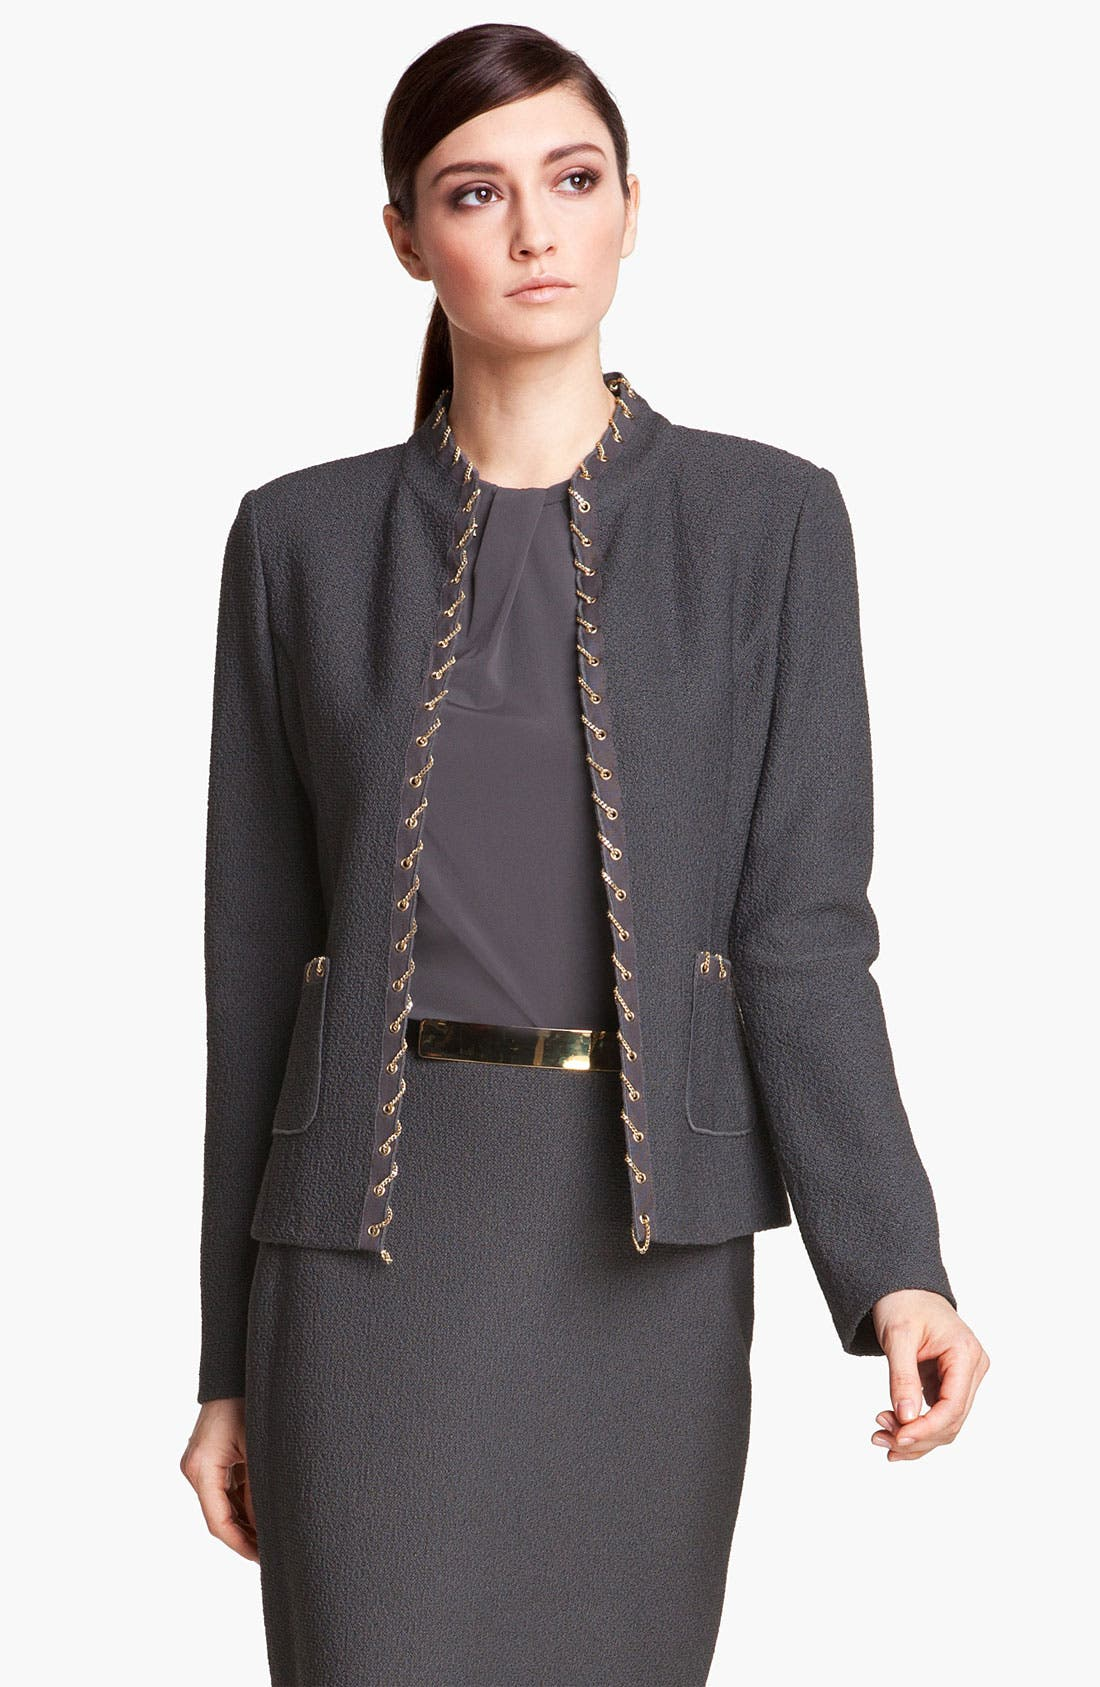 Alternate Image 1 Selected - St. John Collection Chain Trim Bouclé Jacket